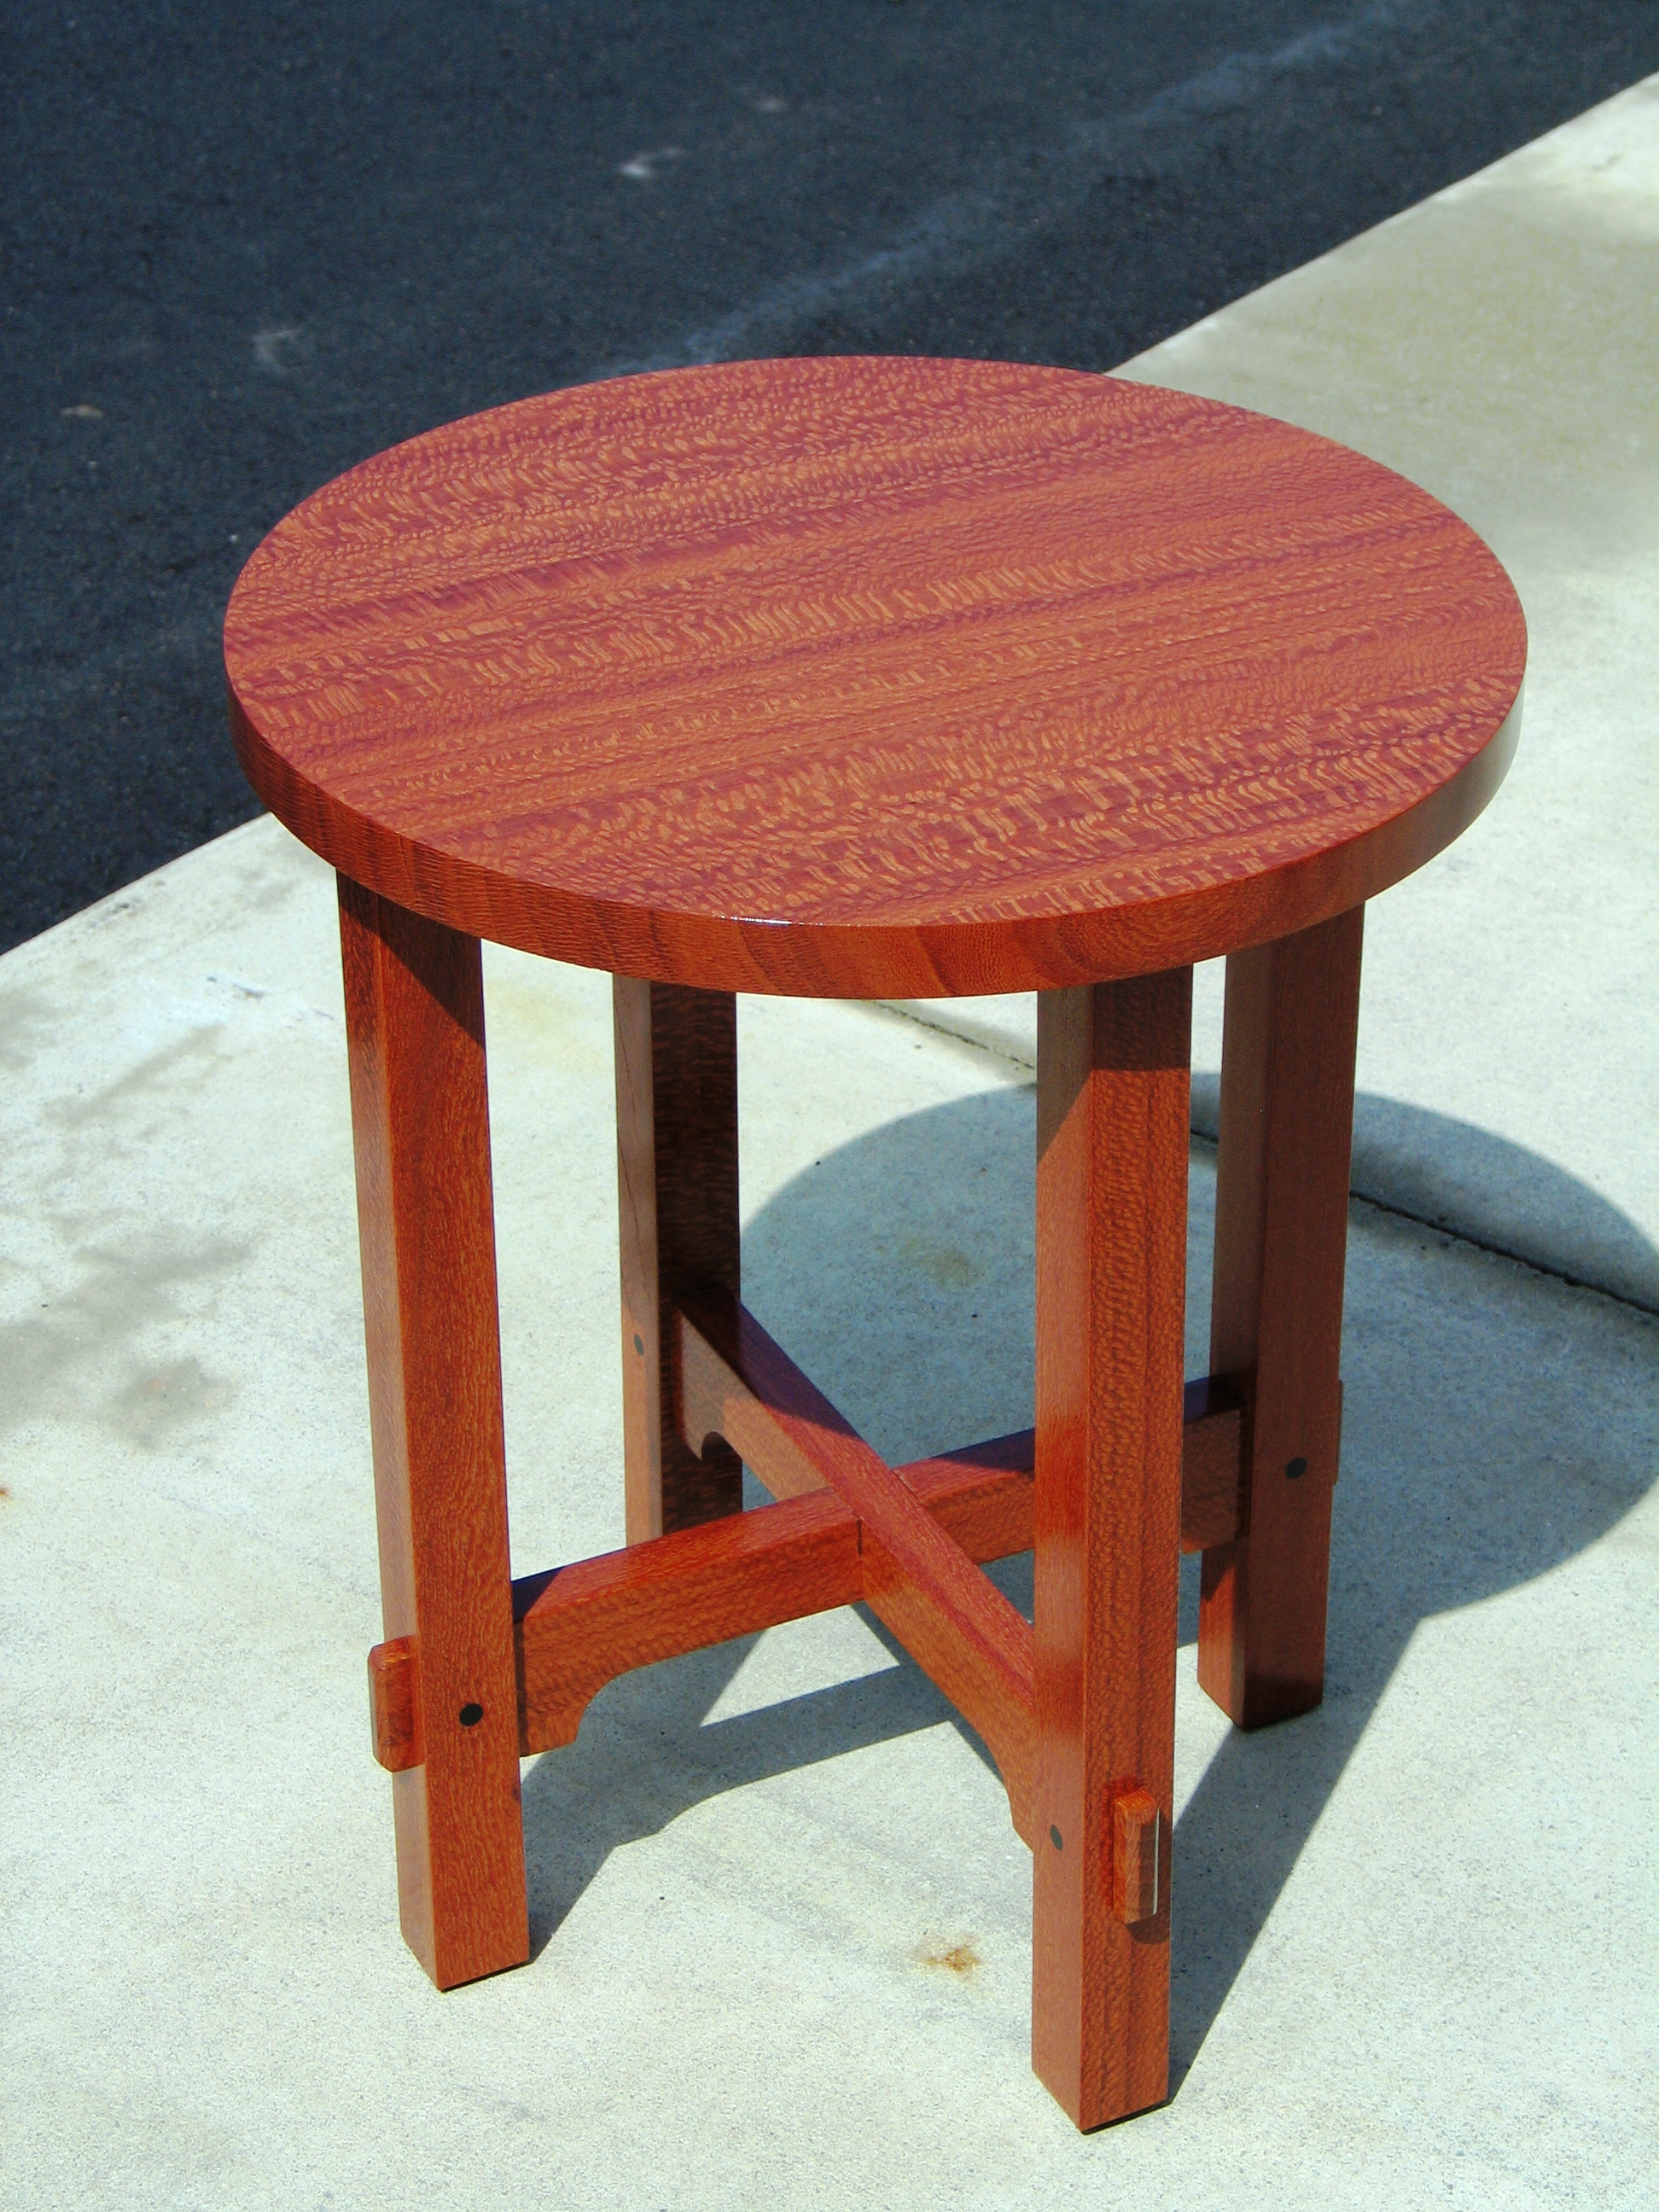 leopardwood side table img red accent wood stickley style patio umbrella ballard designs outdoor cushions pub dining with drawers living room small glass cocktail shelves west elm